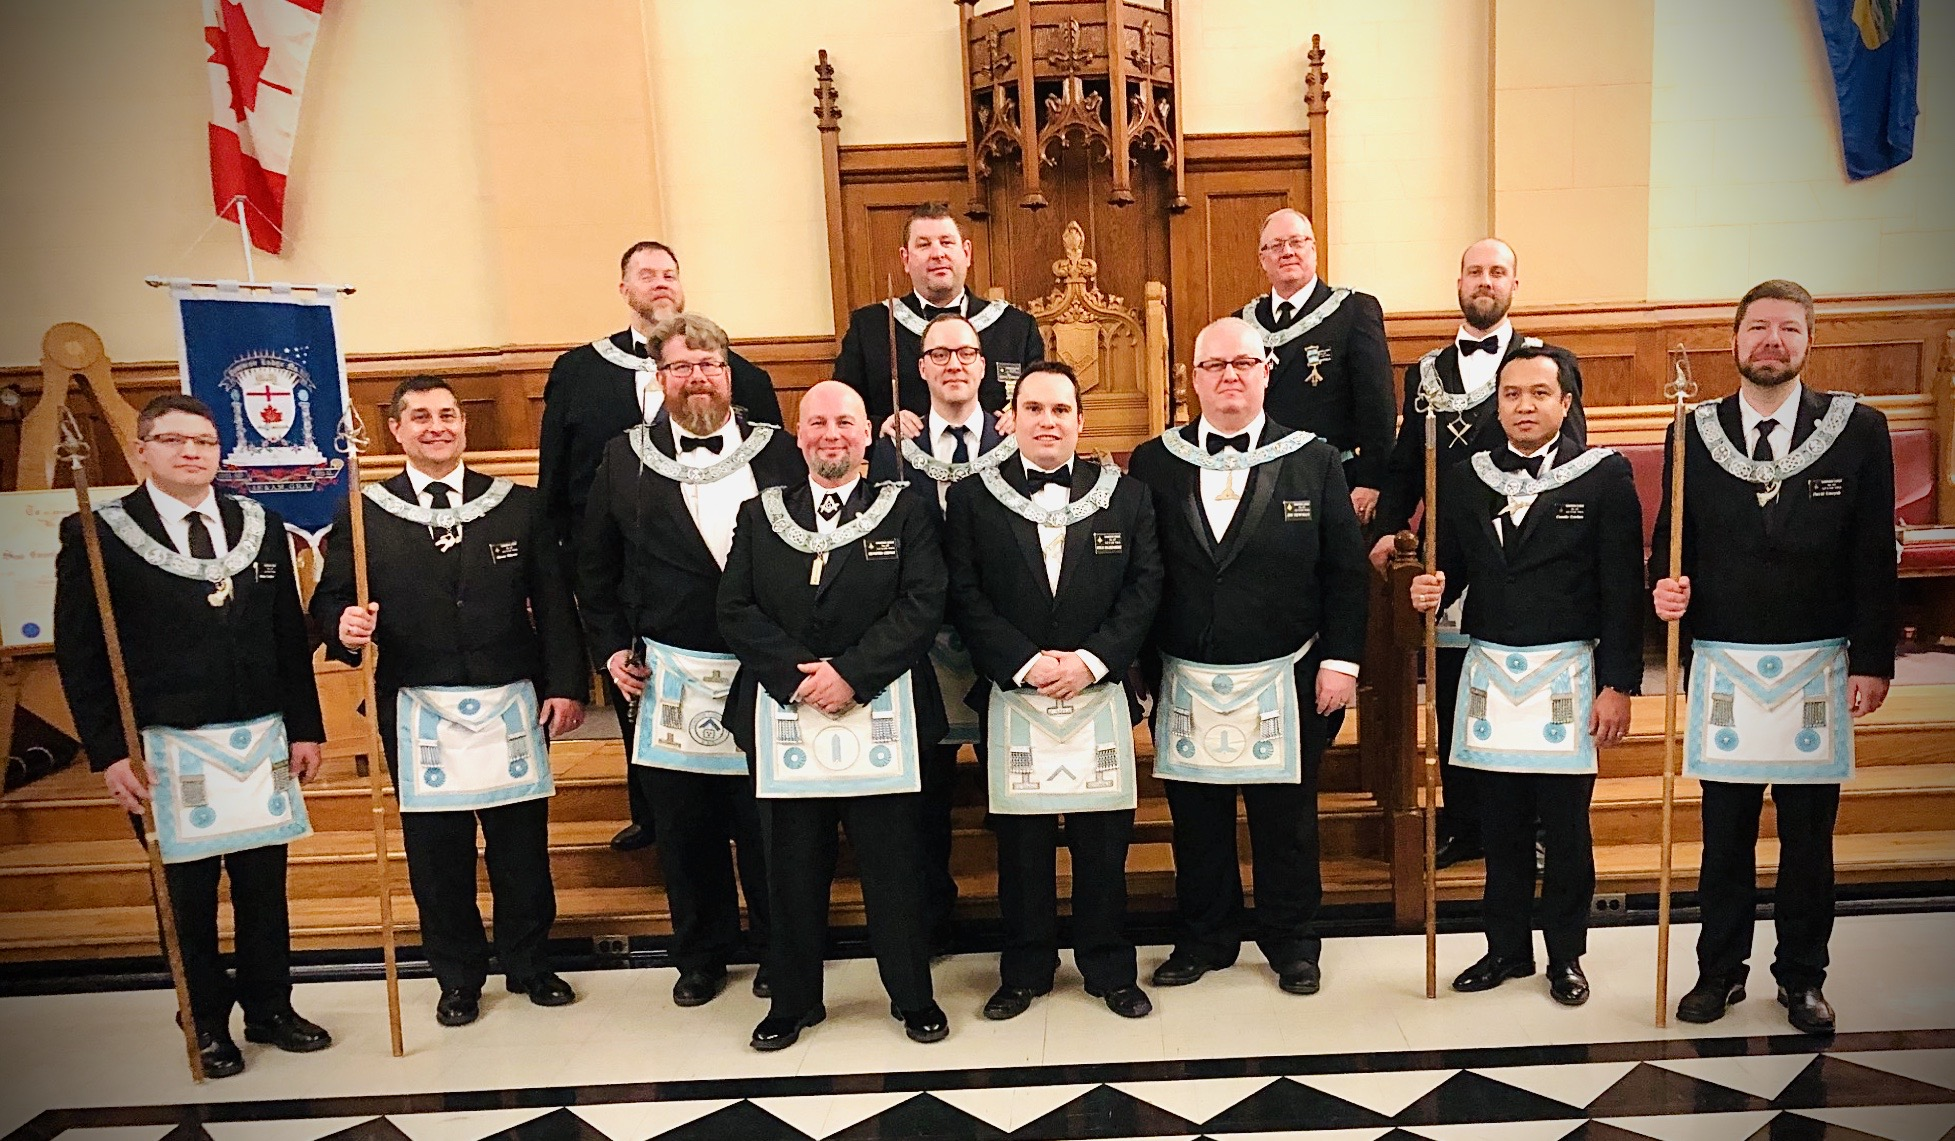 Dominion Lodge Officers 2020